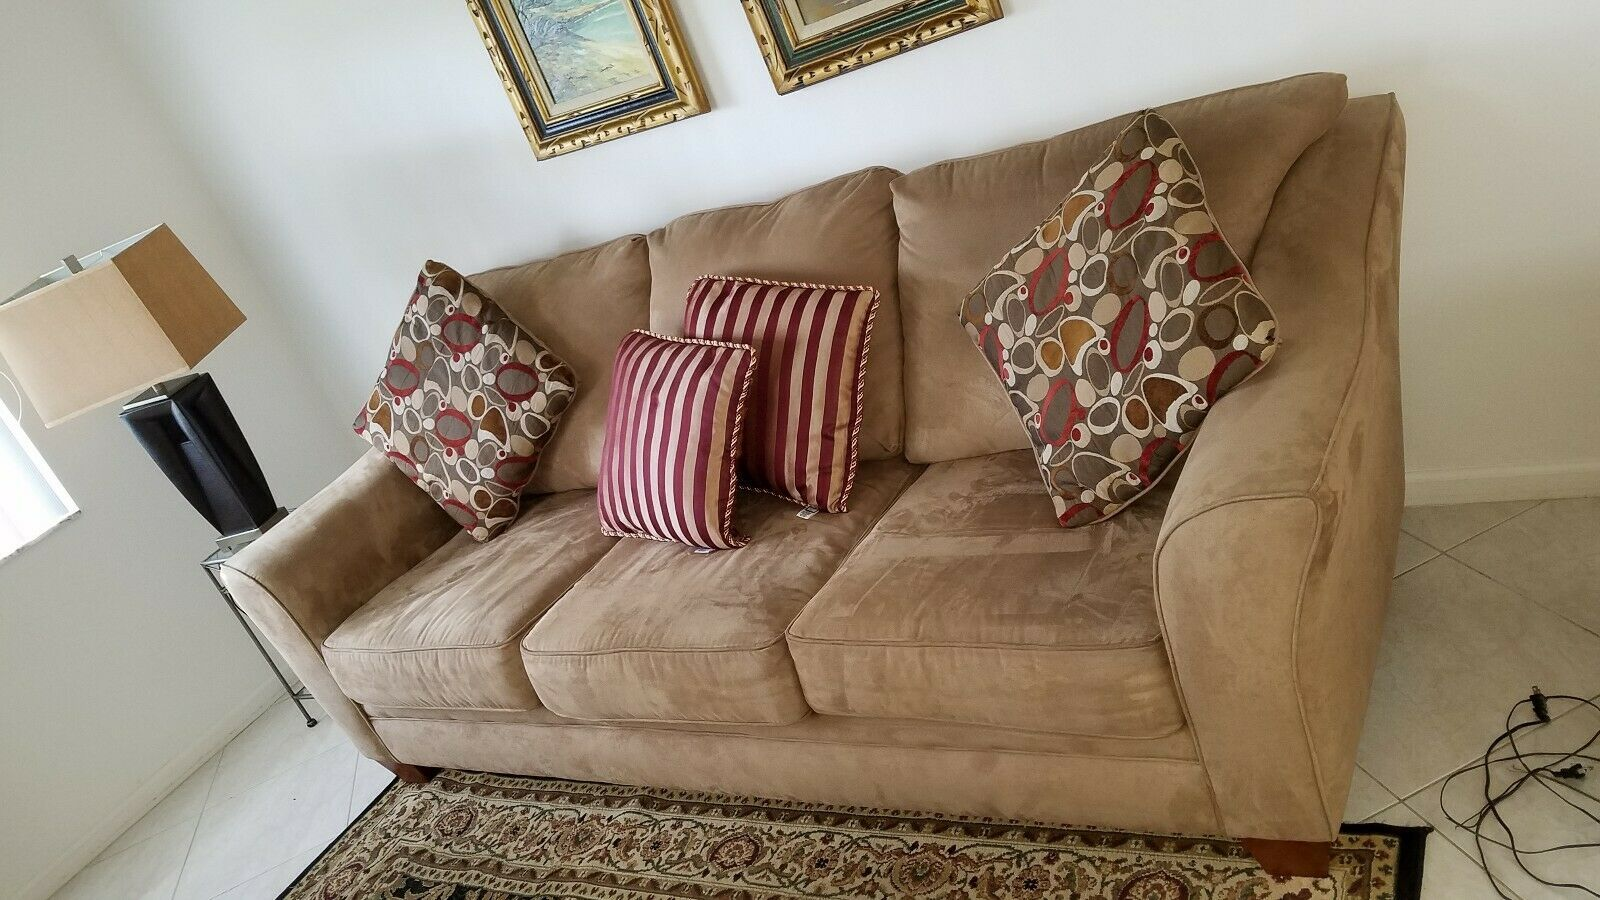 Sensational Microfiber Couch With Matching Decorative Pillows And Free Caraccident5 Cool Chair Designs And Ideas Caraccident5Info